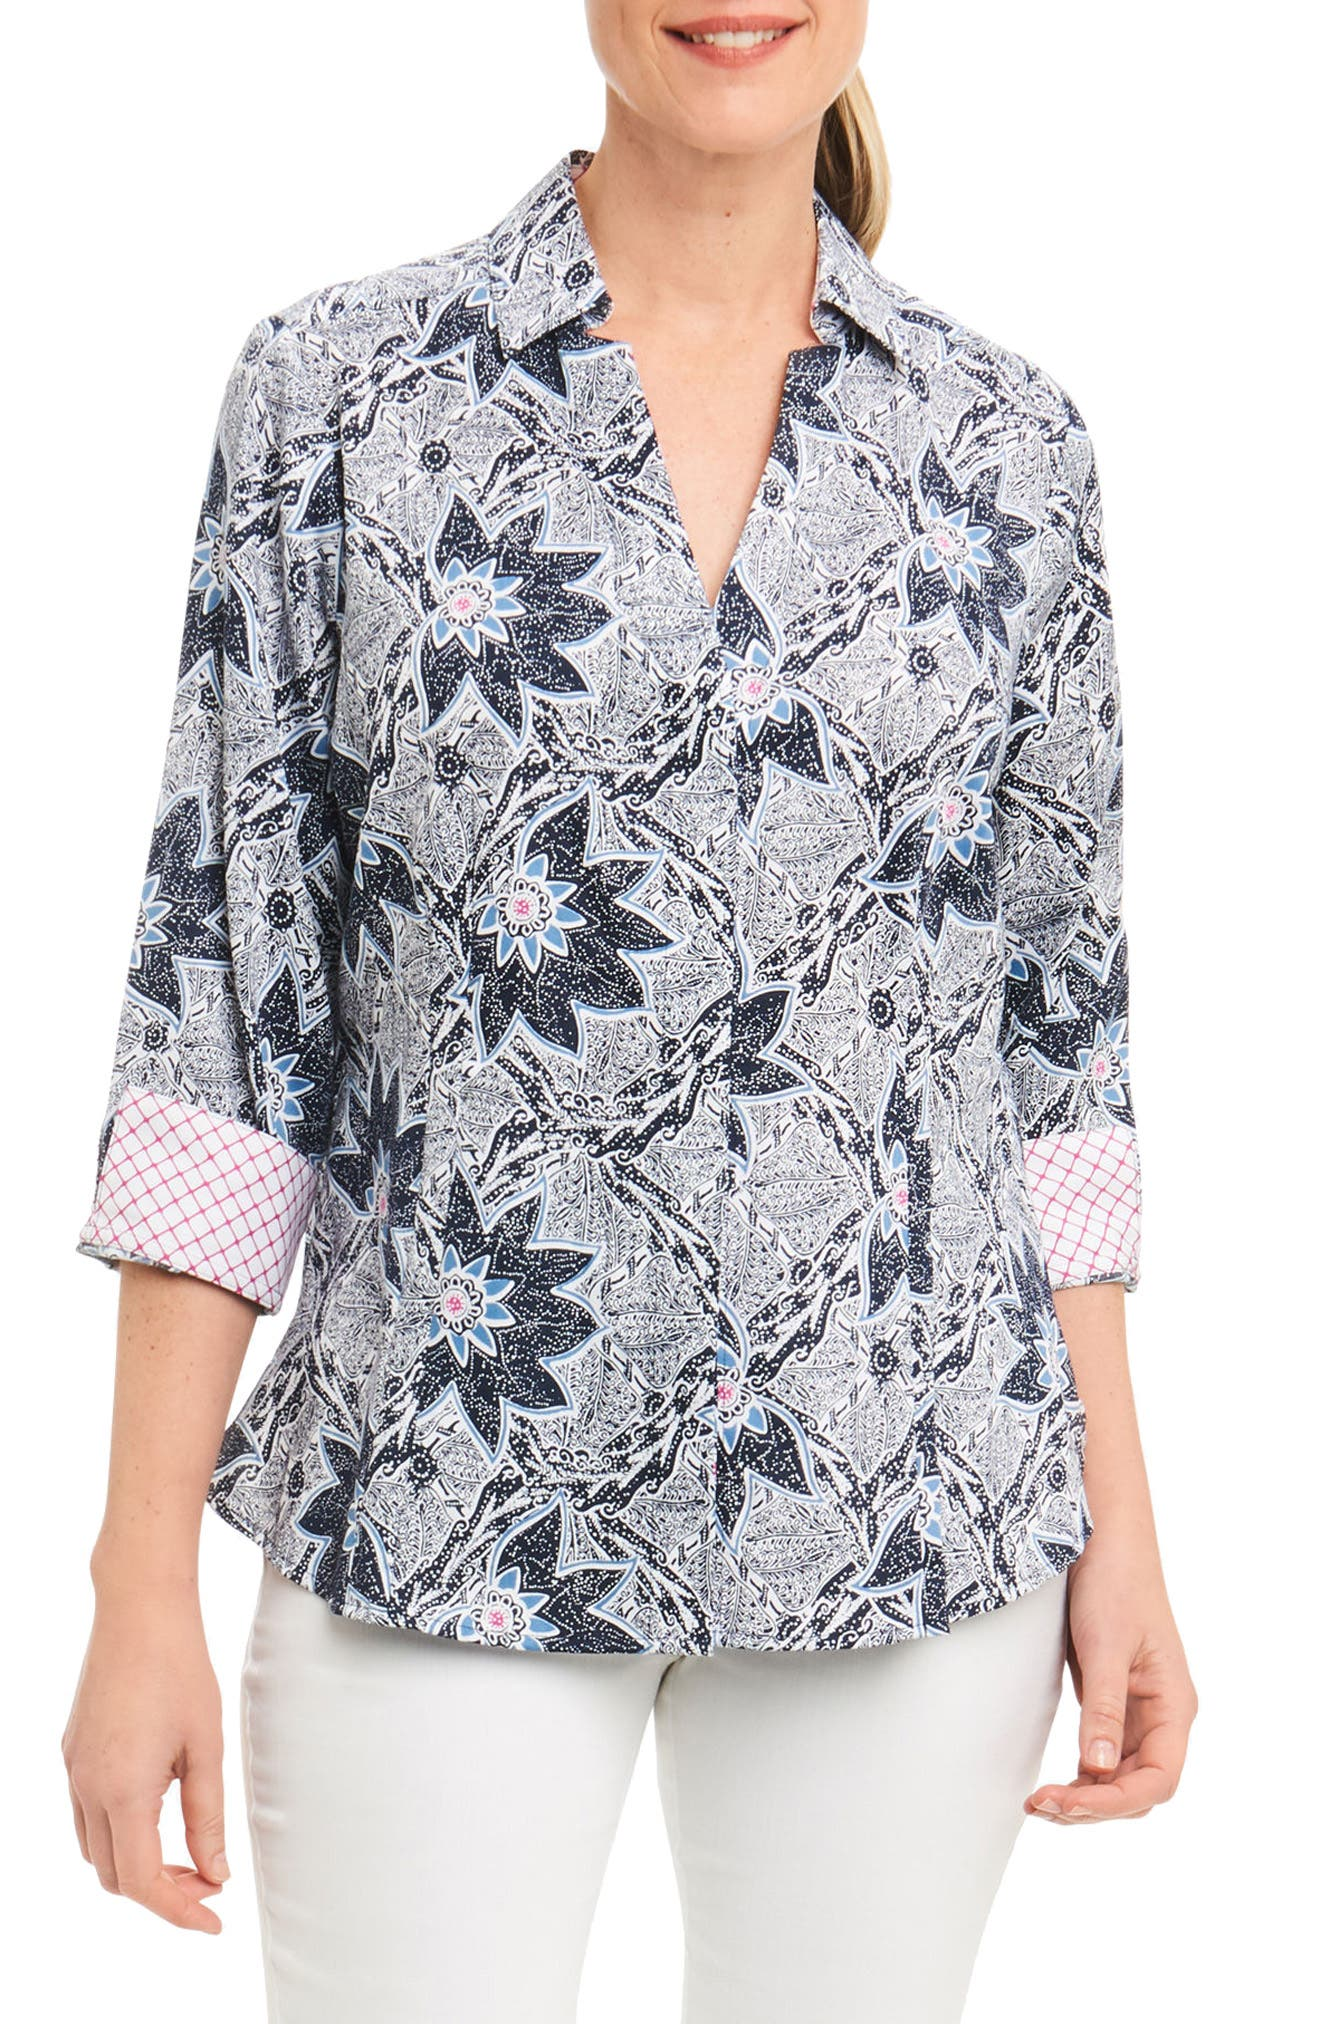 Taylor Summer Floral Shirt,                         Main,                         color, 462